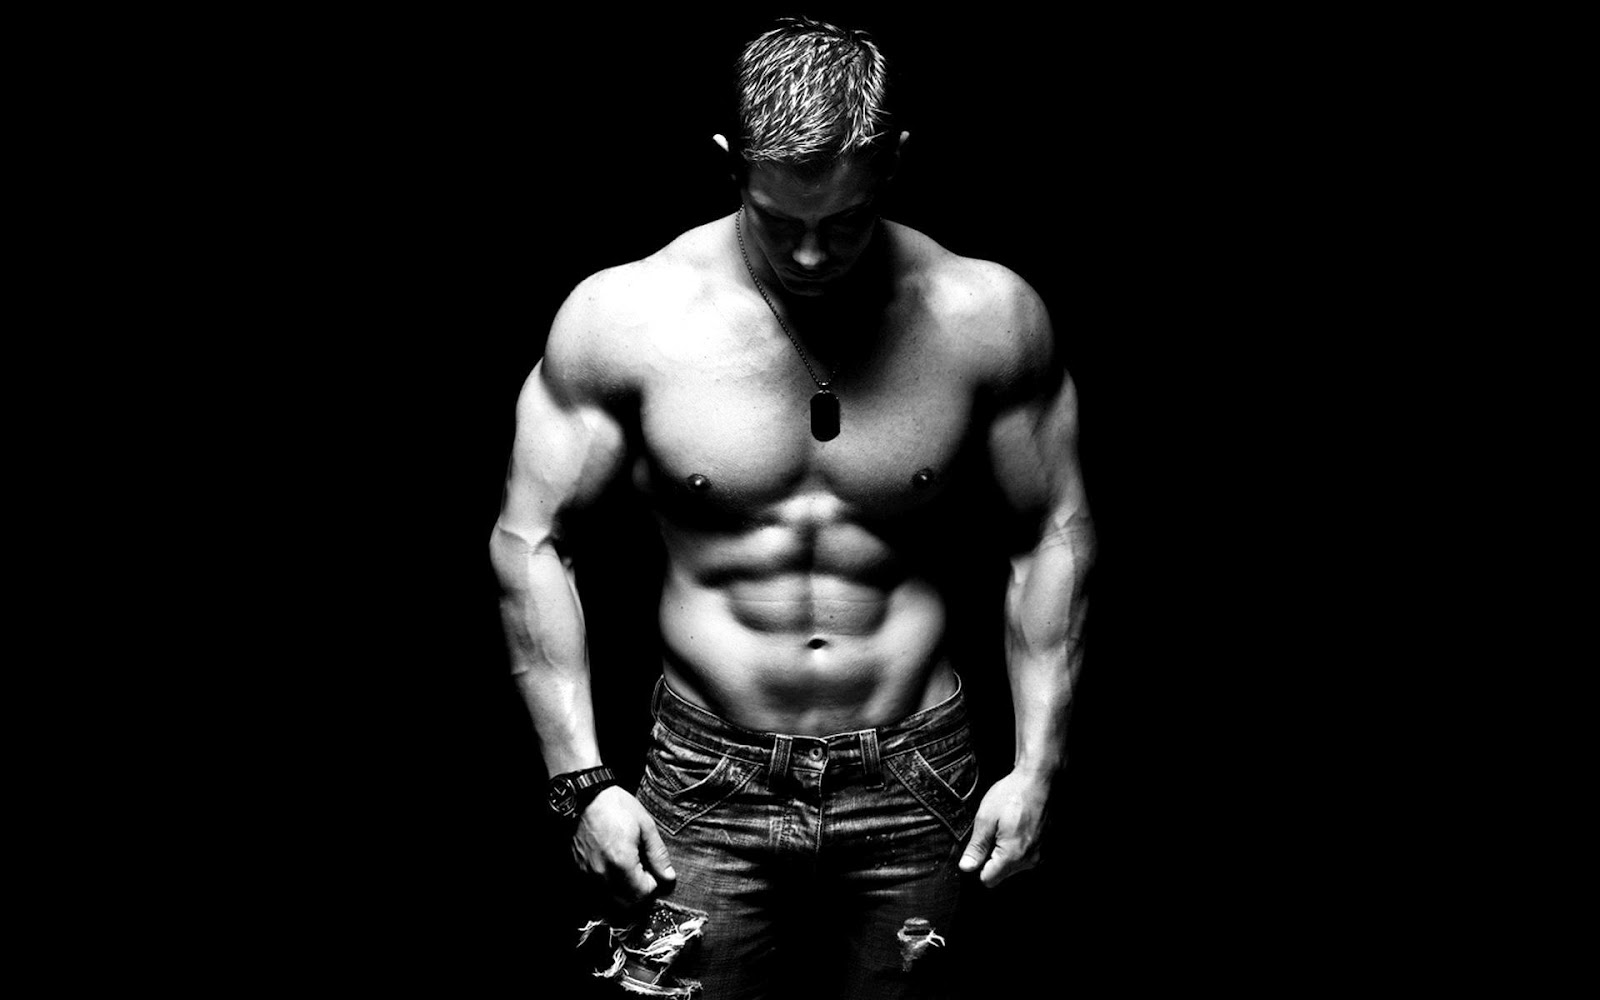 Bodybuilding steroids secrets: Safety and Side Effects of